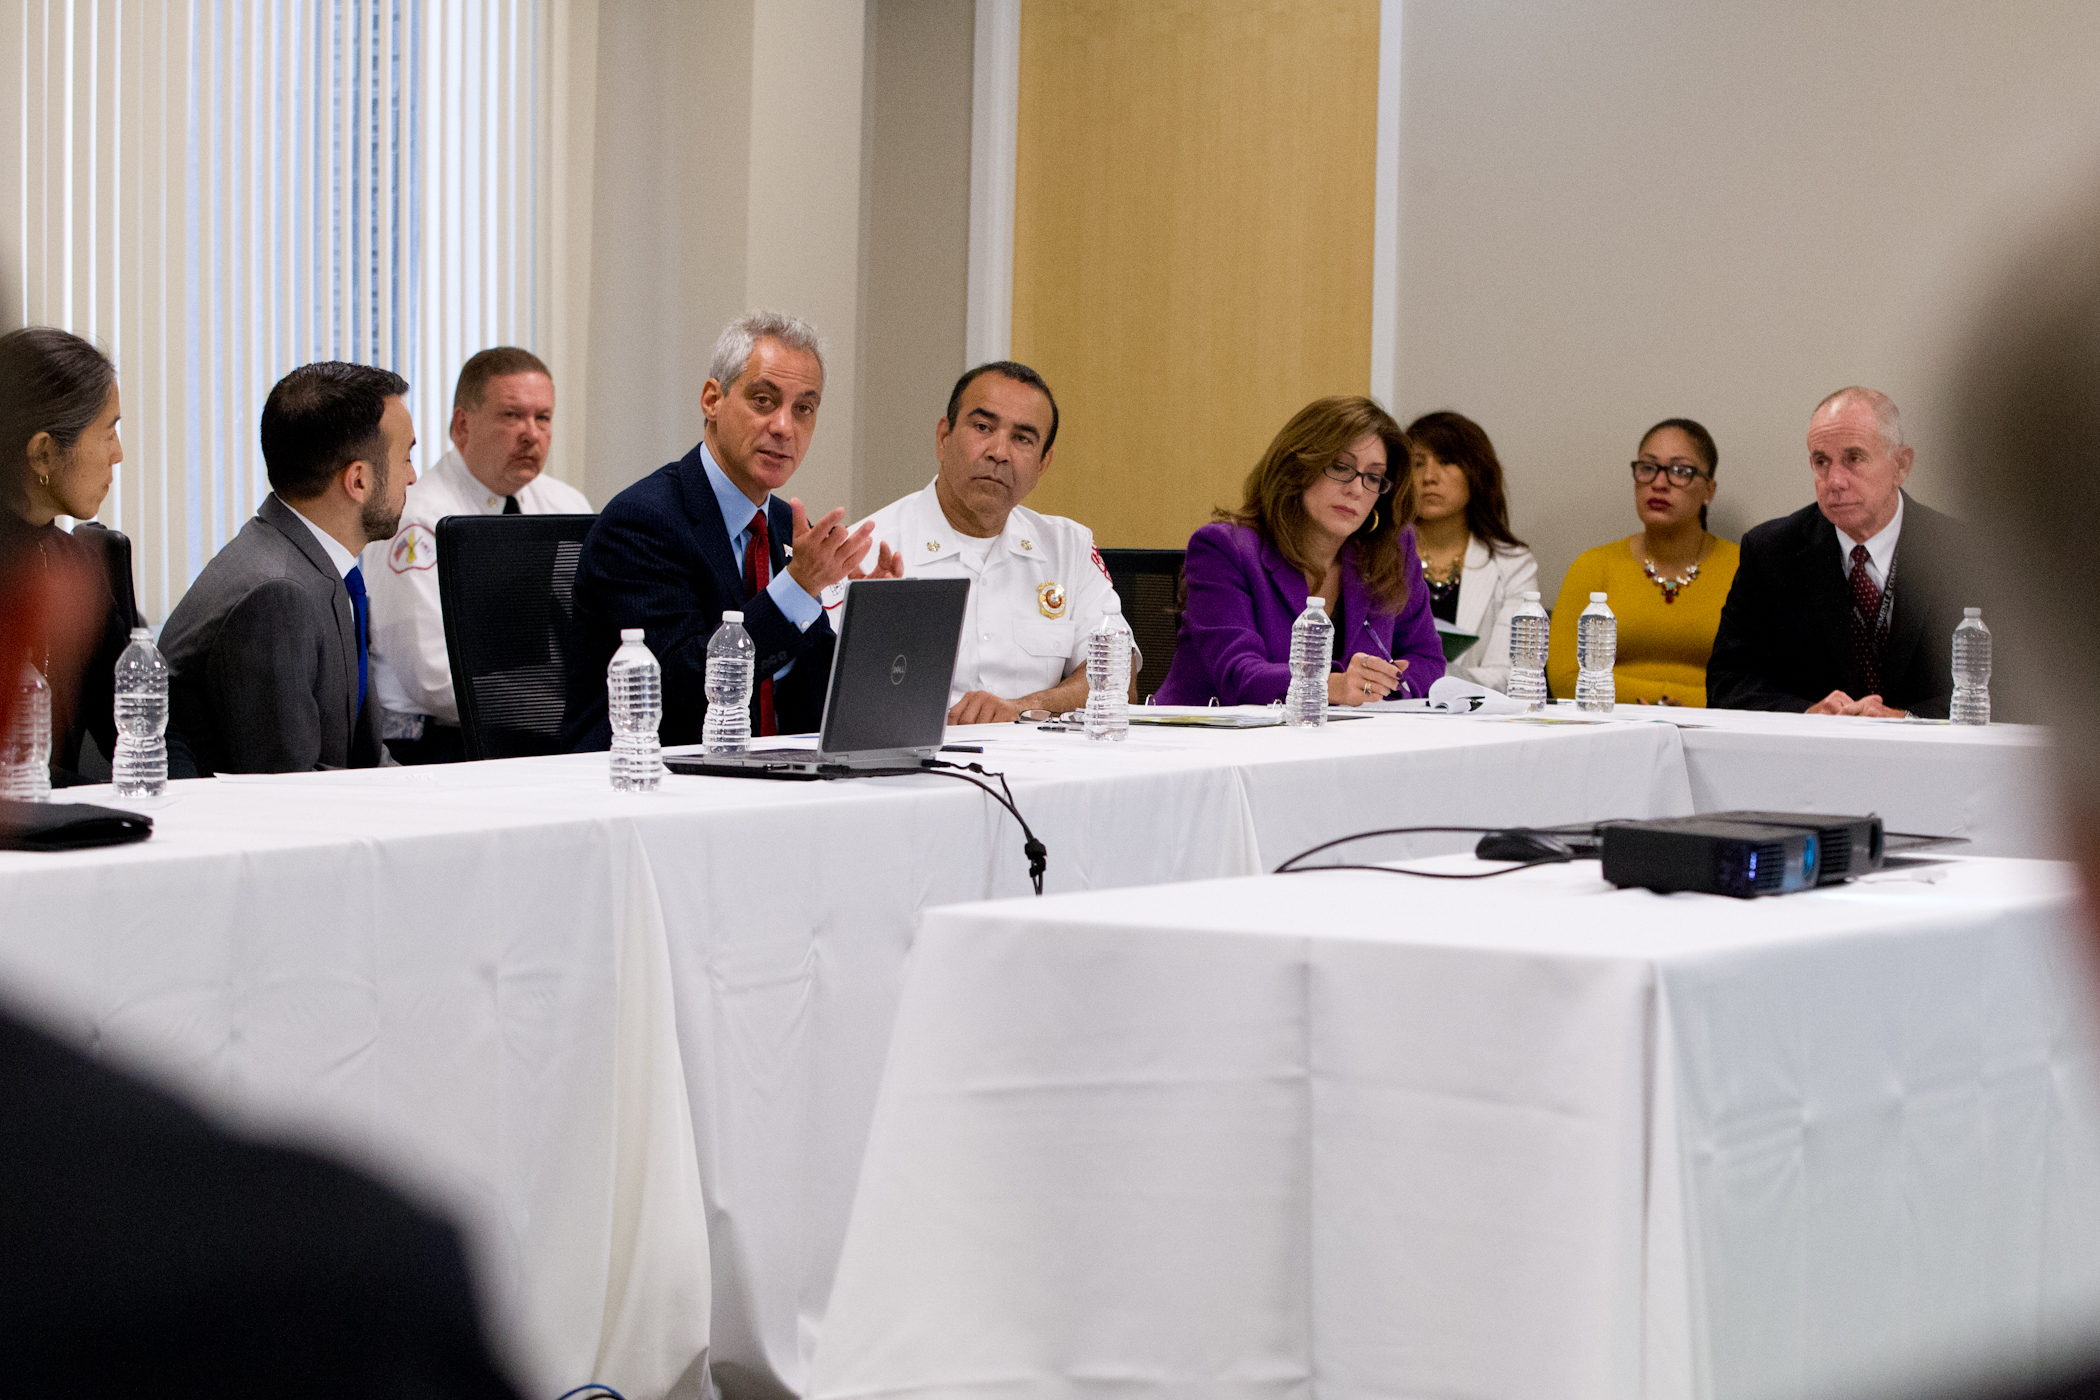 Mayor Emanuel meets with public health officials, cabinet members and hospital leaders on Ebola preparedness.